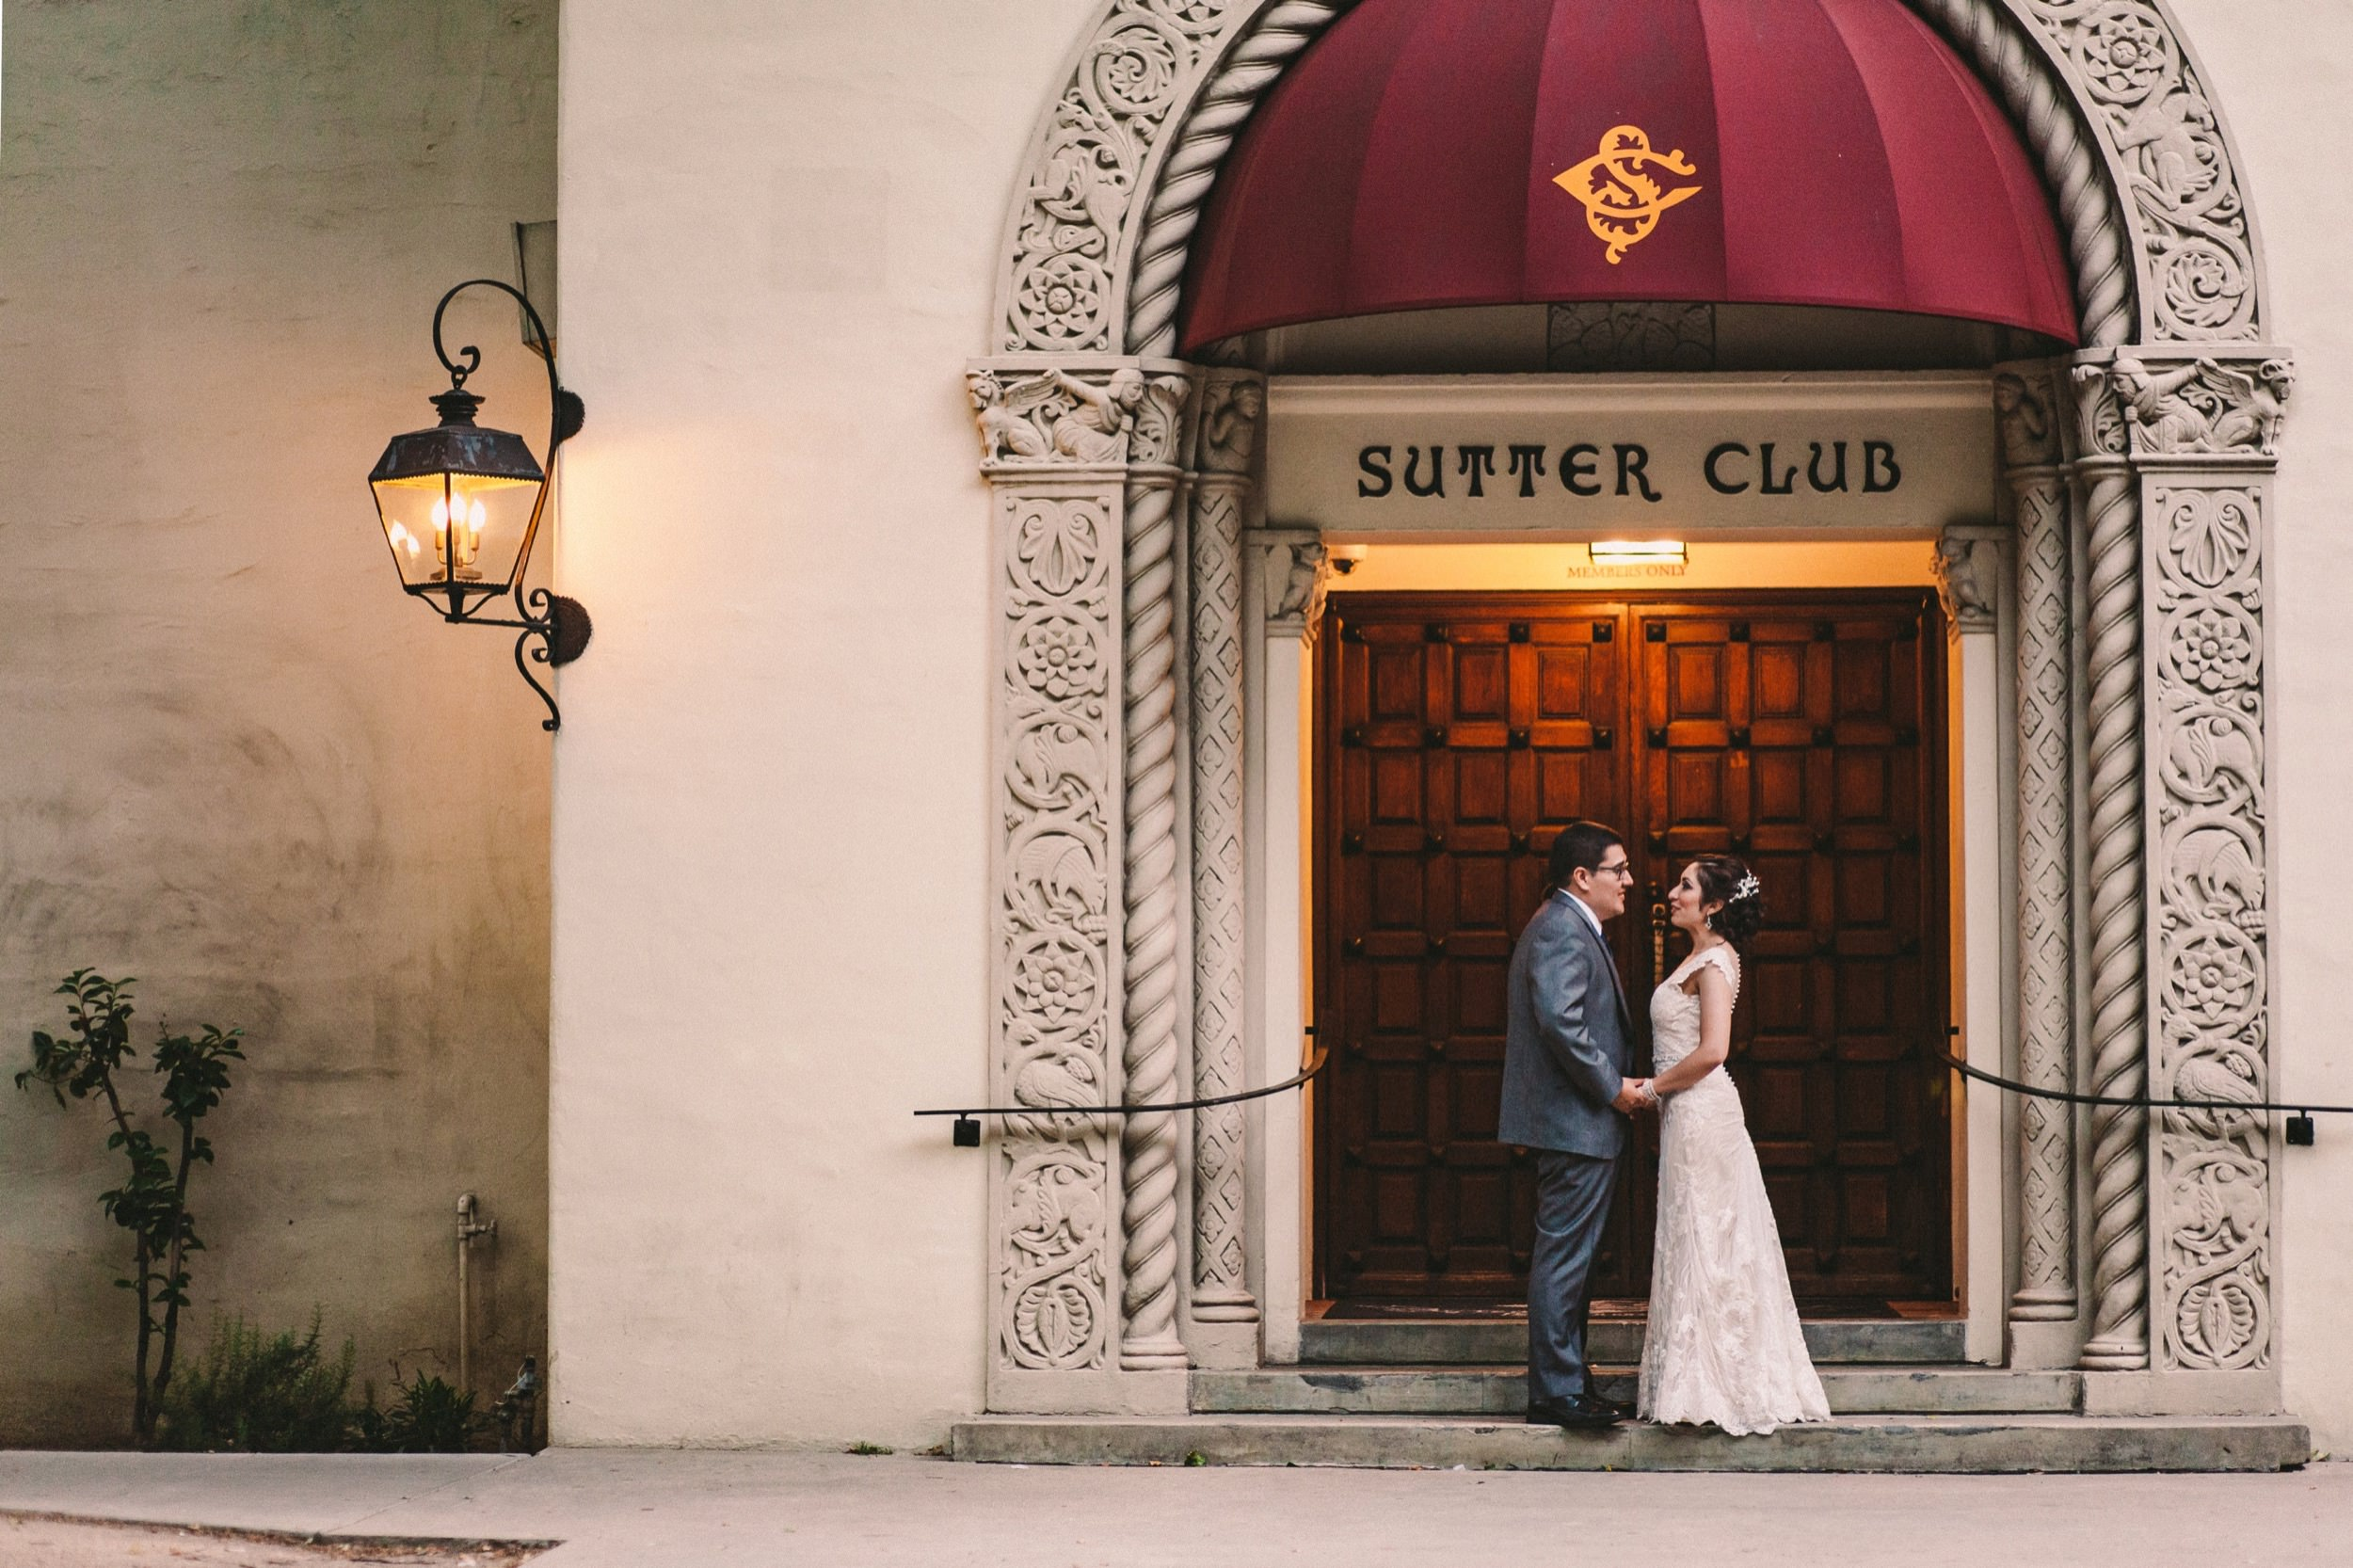 Sacramento Sutter Club & Capitol Building Wedding-141.jpg